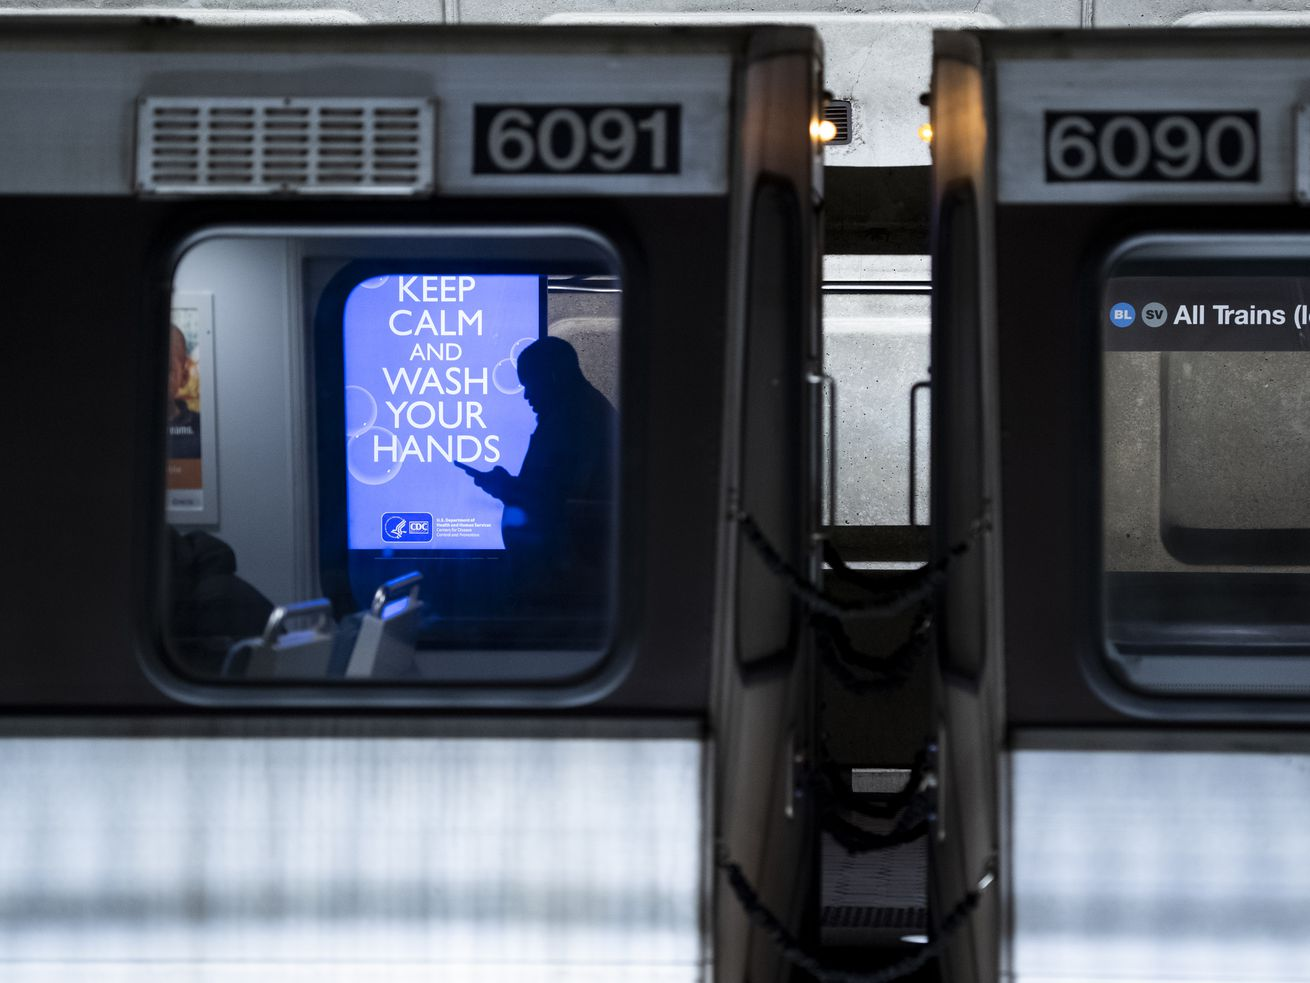 An electronic ad in the from the Centers for Disease Control advises commuters and tourists in the Metro Center subway station in Washington to keep calm and wash your hands.